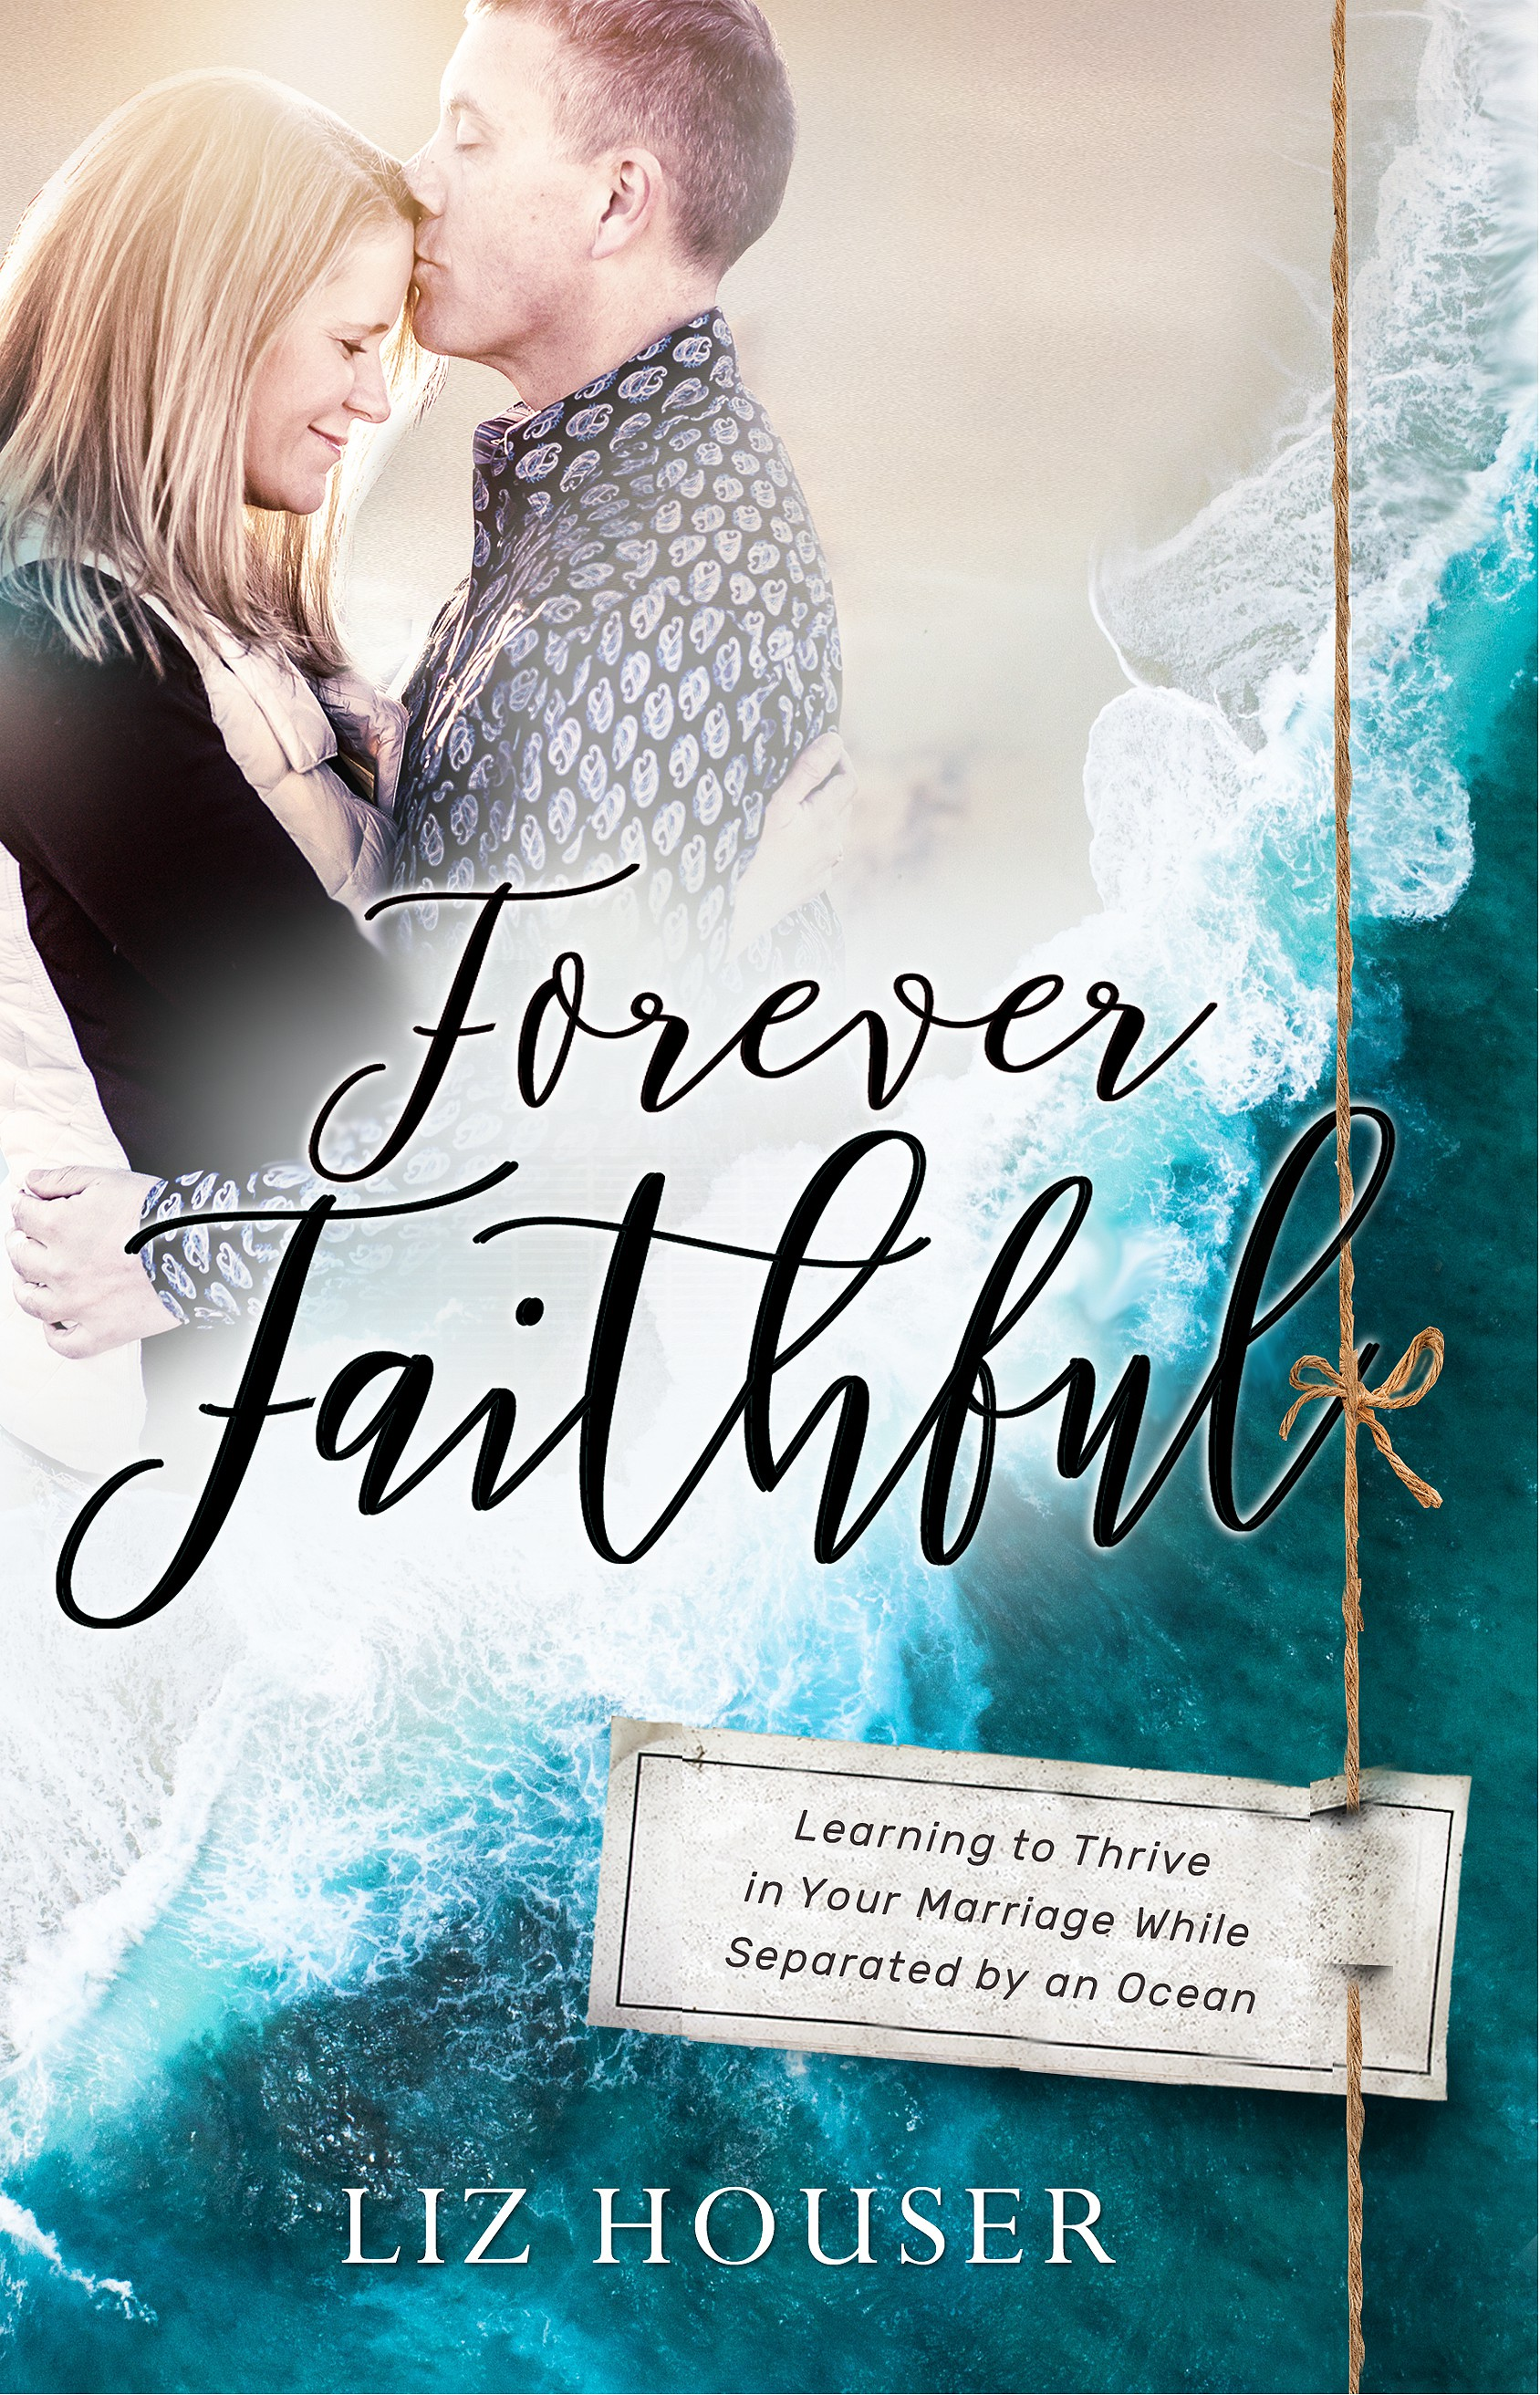 Create a real life book cover for a faithful love story